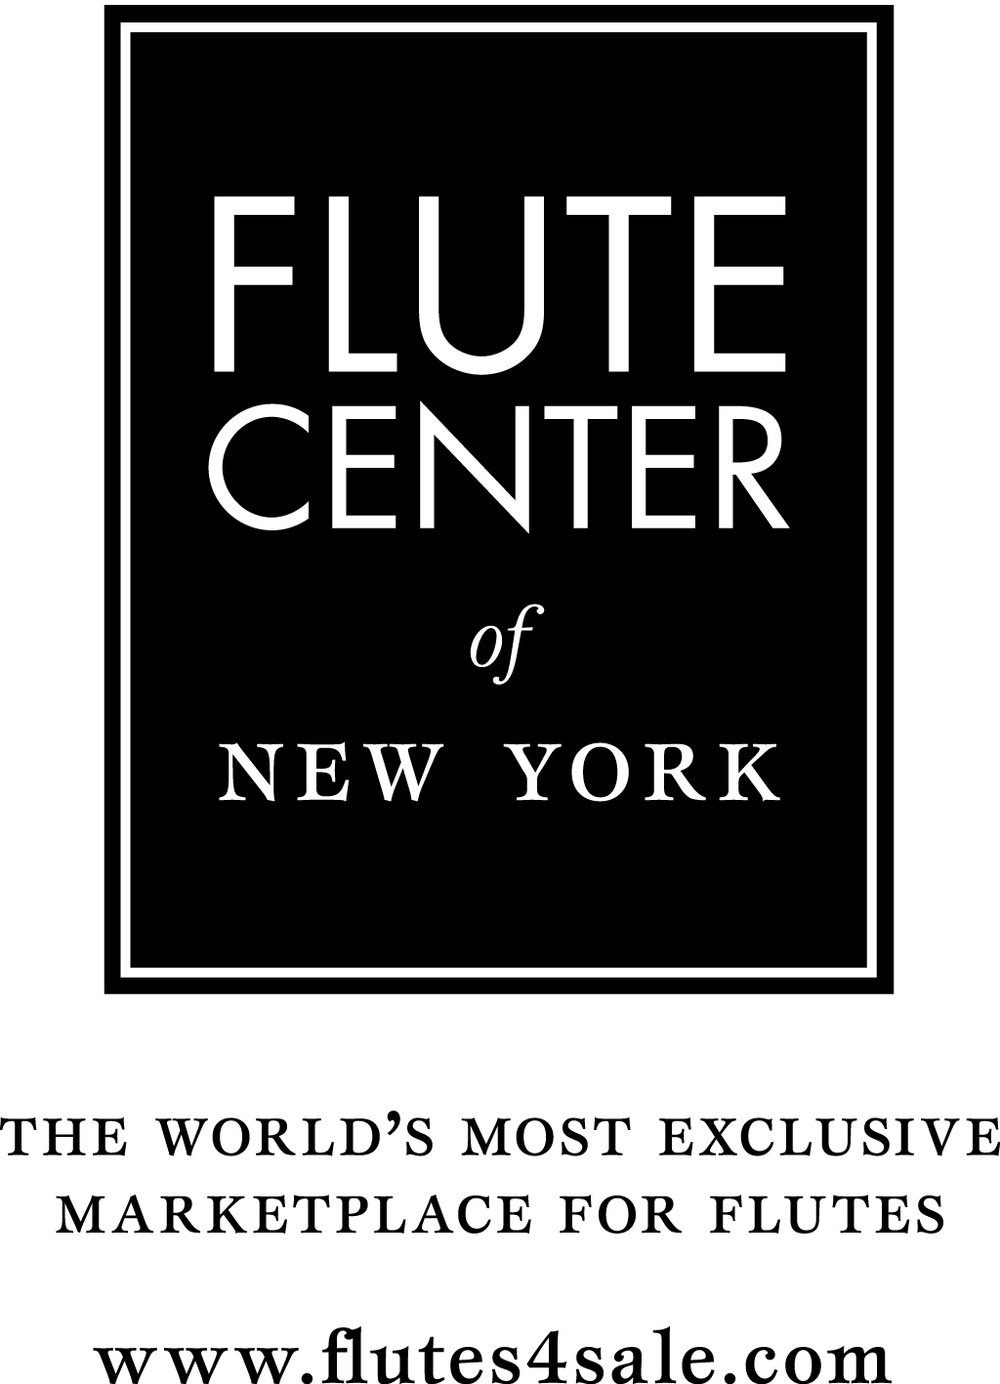 flutecenter-logo copy 2.jpg